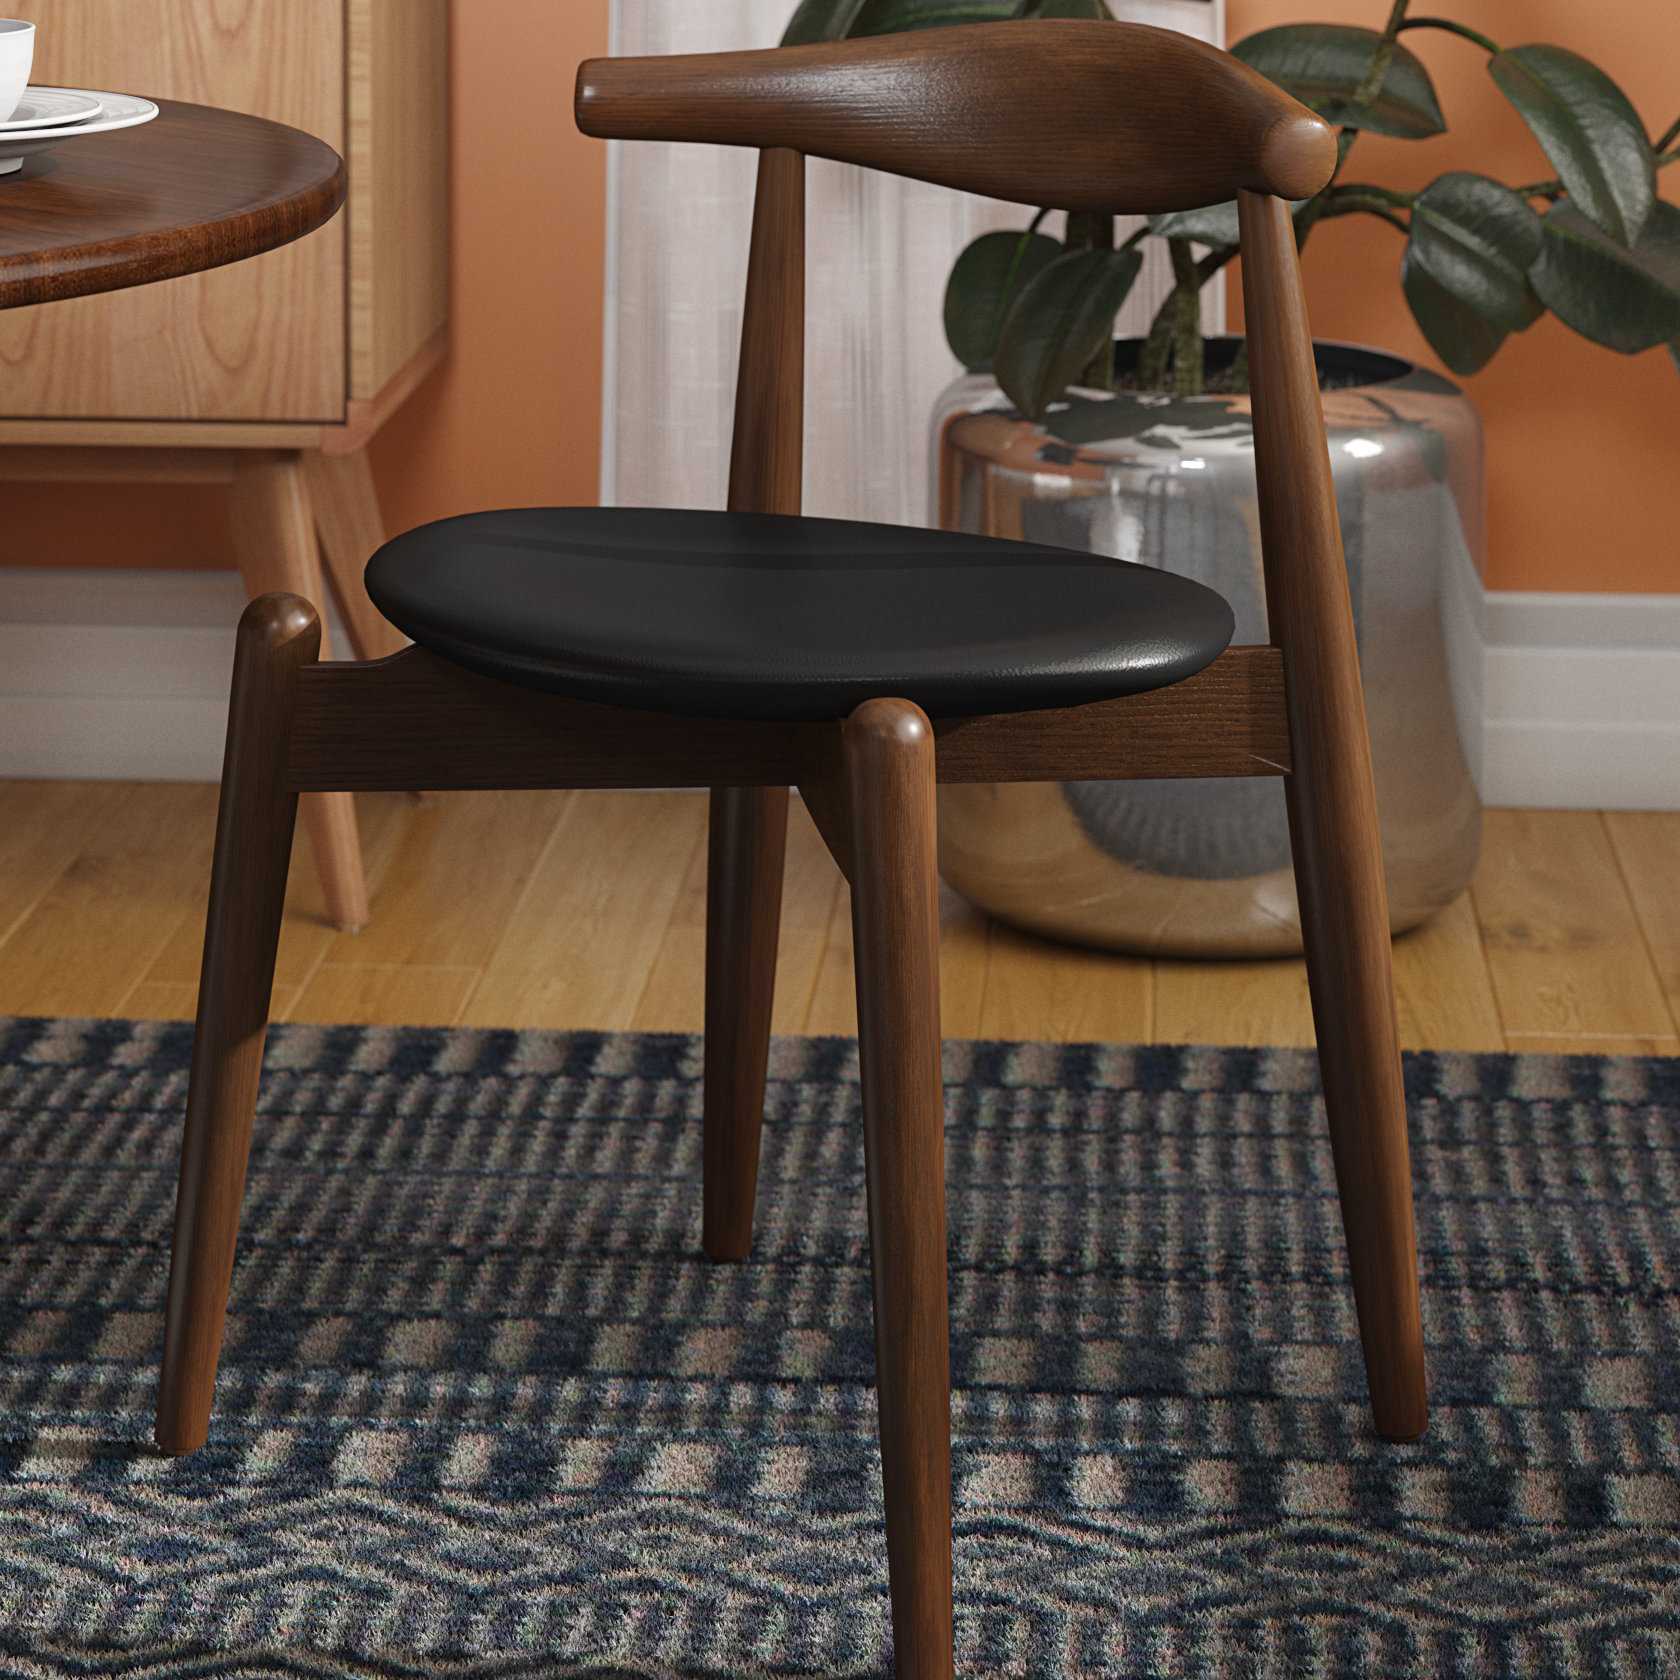 Lattice Back Side Chair | Wayfair With Regard To Carbon Loft Ariel Rocking Chairs In Espresso Pu And Walnut (View 18 of 20)